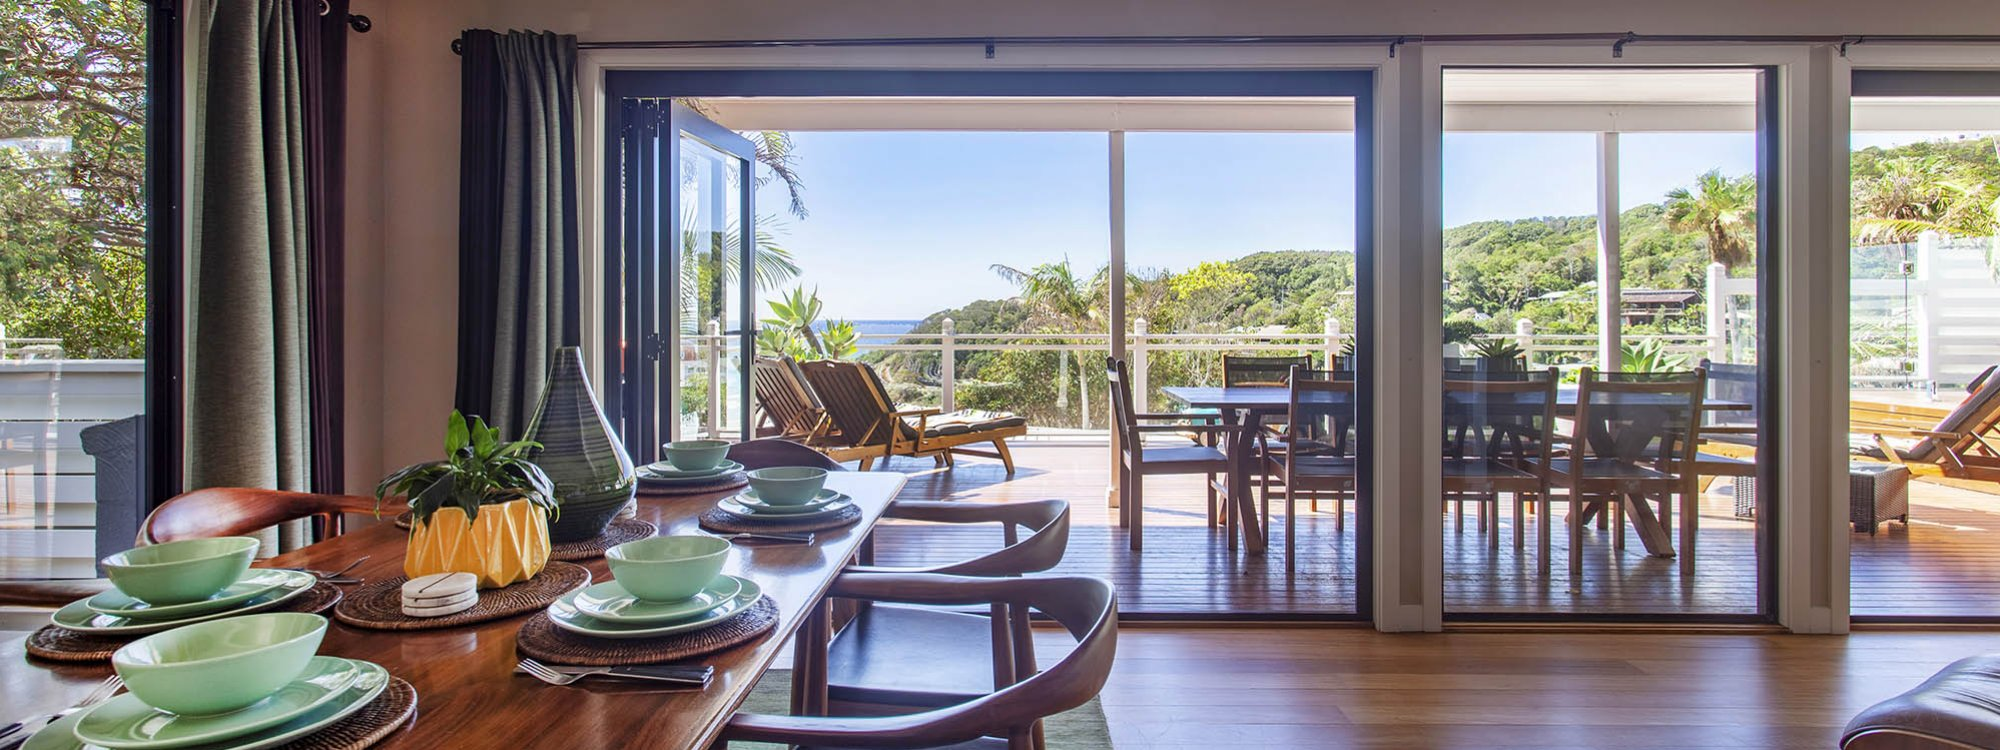 The Palms at Byron - Byron Bay - Dining Towards View b